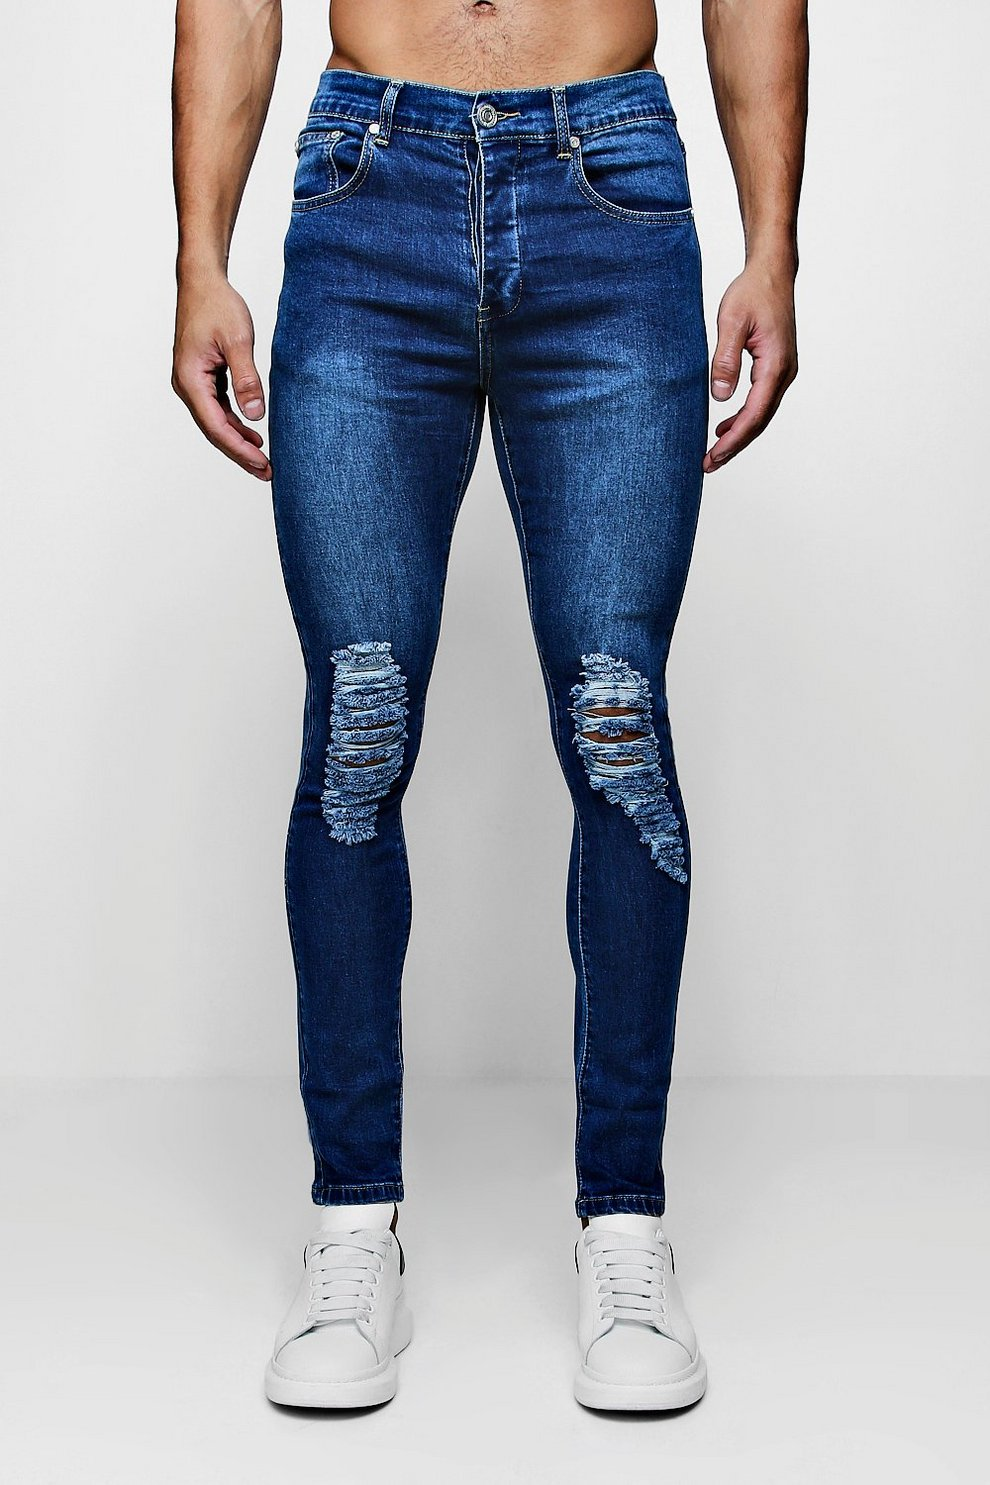 88bae0088d61 Mens Mid blue Super Skinny Jeans with Heavily Distressed Knees